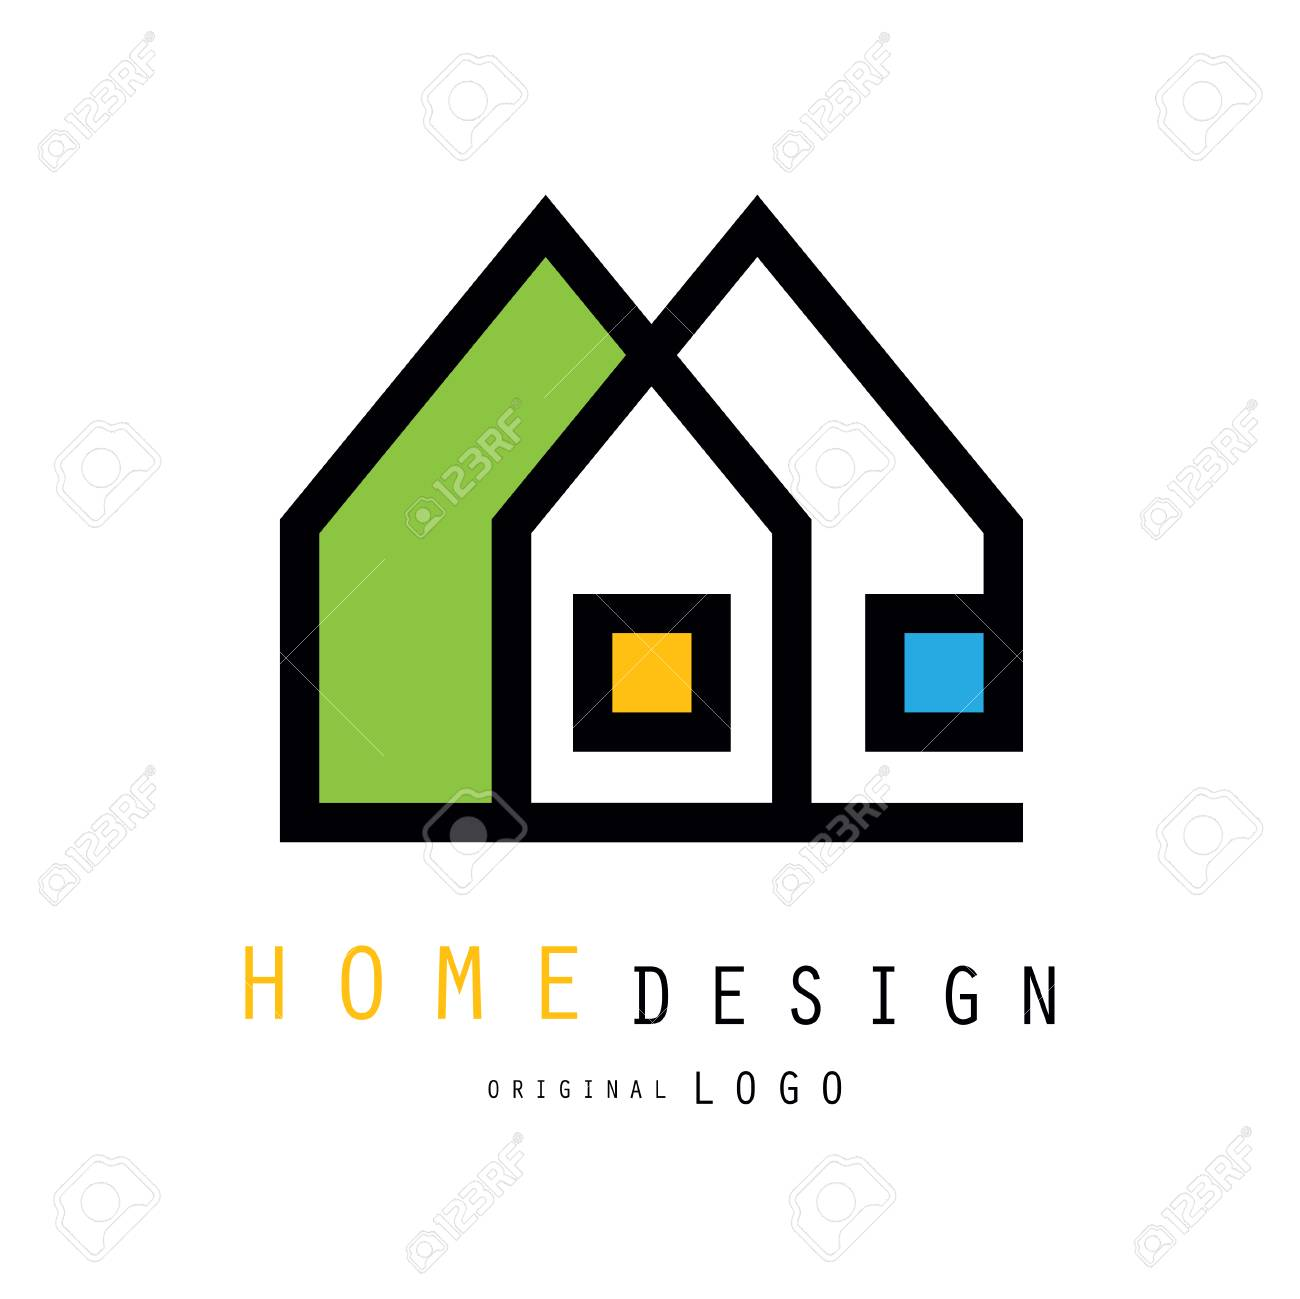 Abstract City Houses For Logo Design Of Construction Or Architecture Royalty Free Cliparts Vectors And Stock Illustration Image 98702140